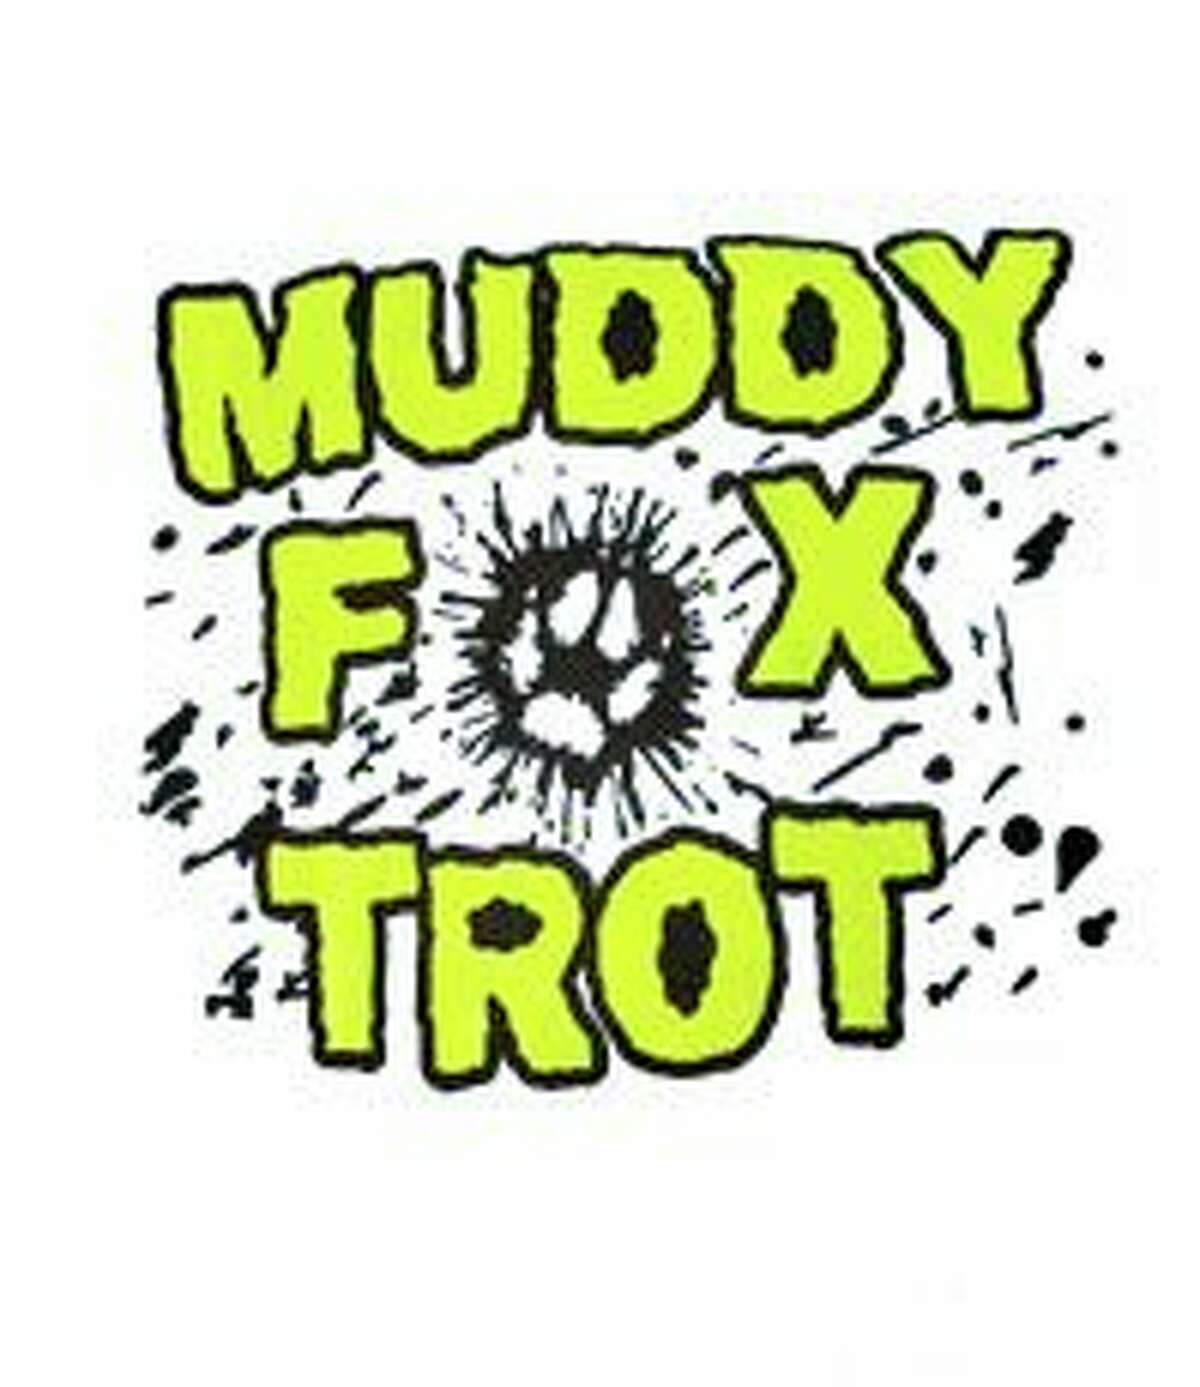 The Muddy Fox Trot returns to WSCC in July.